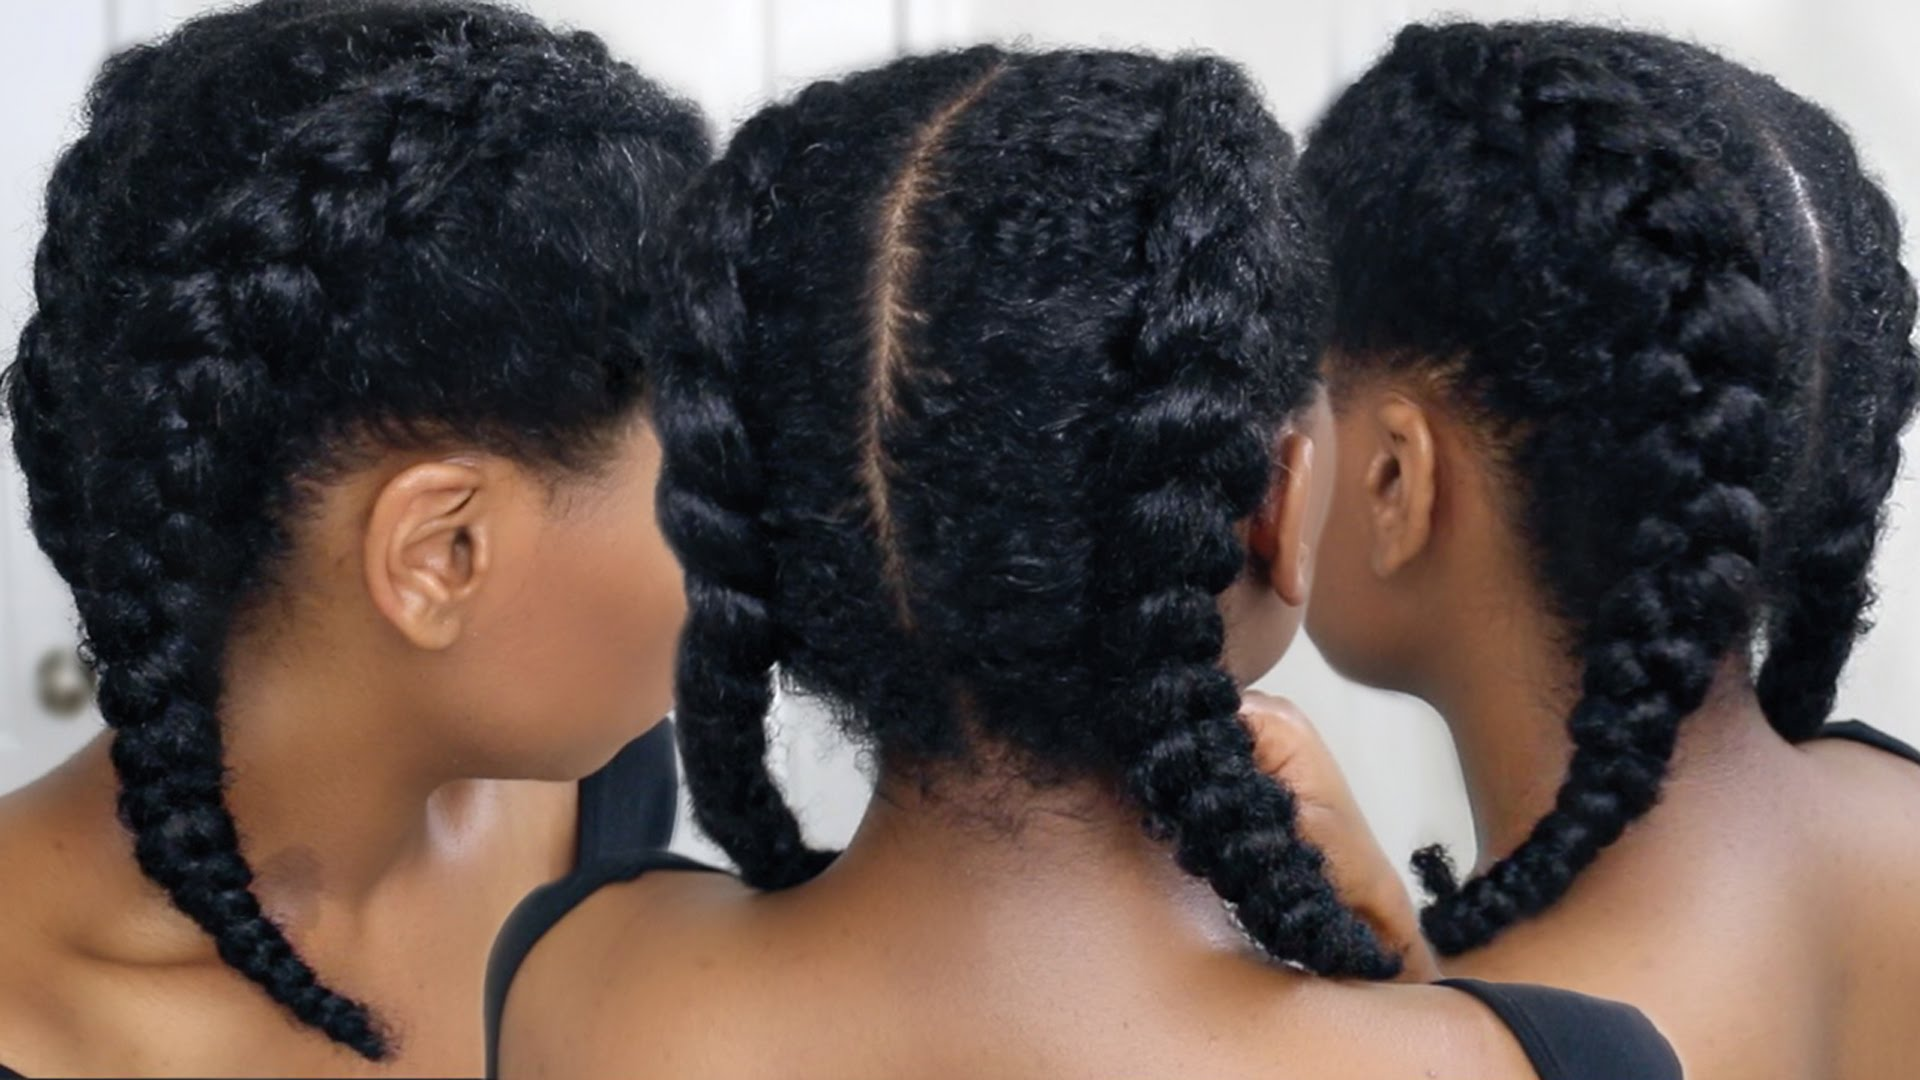 Hair tutorials love black hair watch and learn from this easy tutorial baditri Images